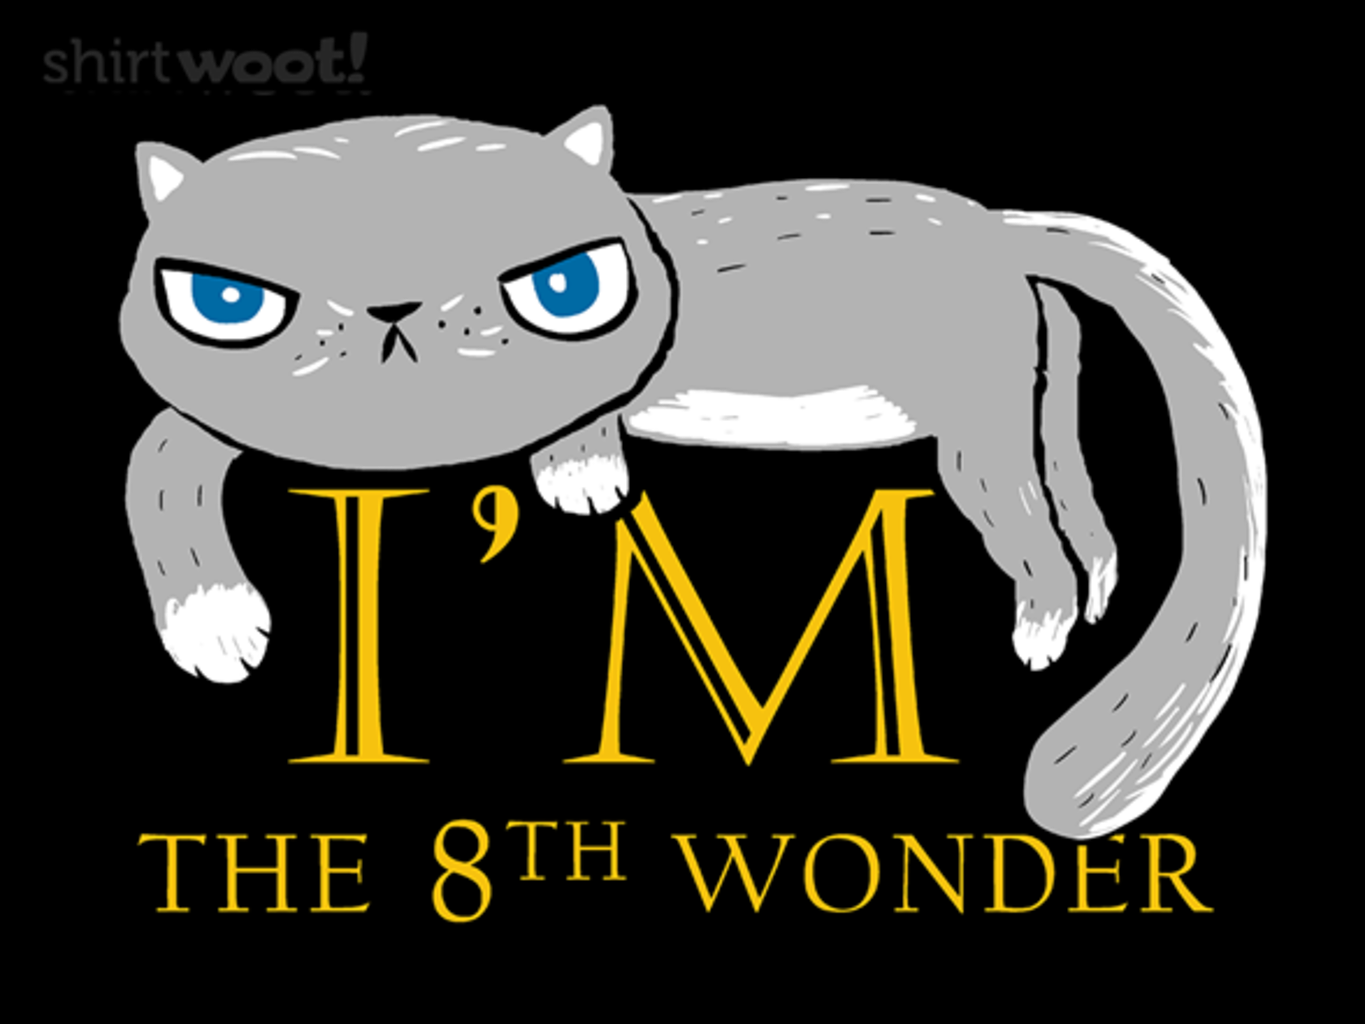 Woot!: A Modest Cat - $15.00 + Free shipping